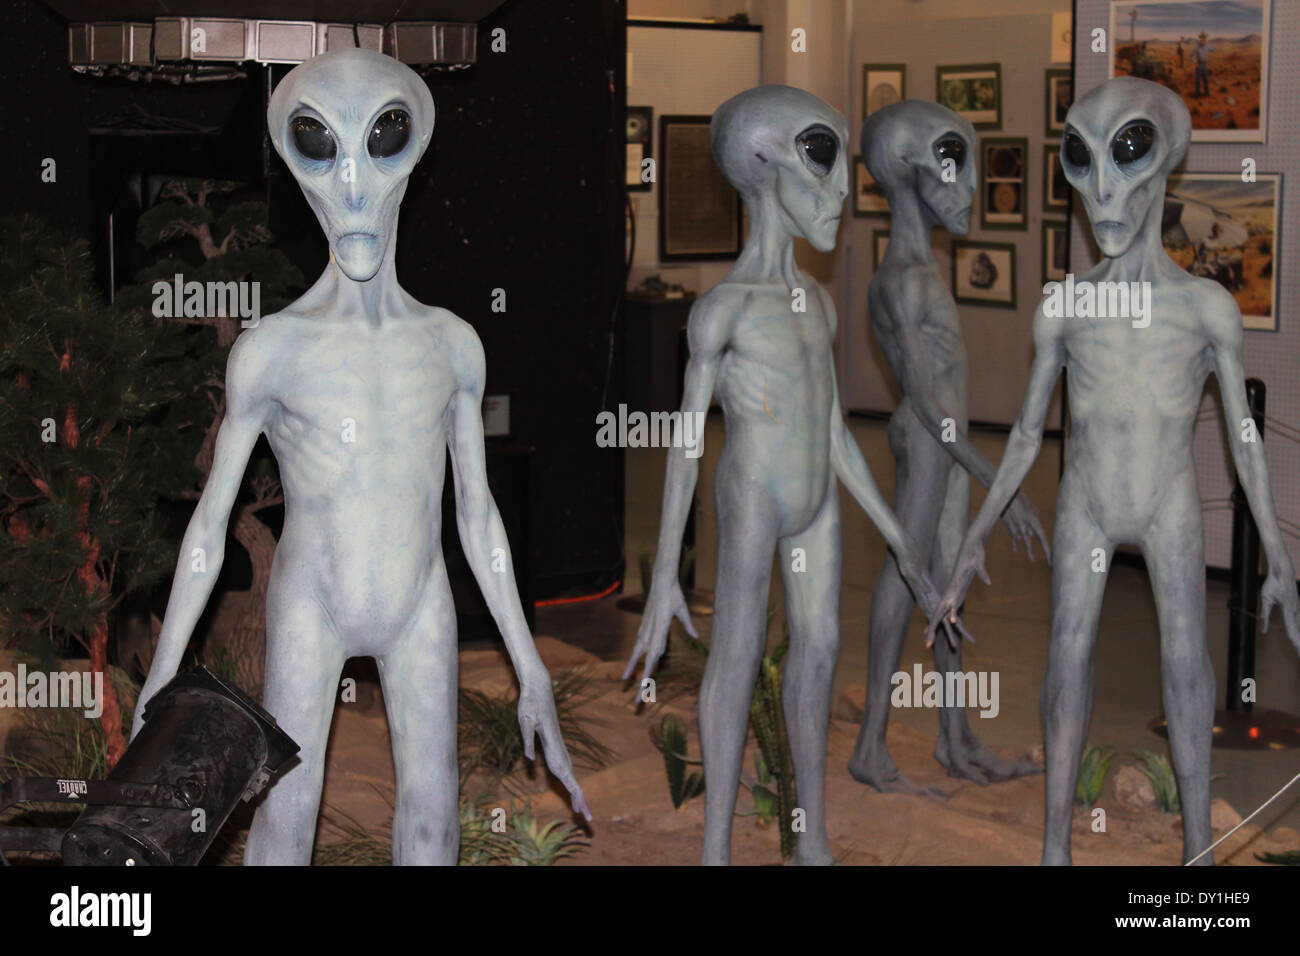 UFO Museum aliens, Roswell, New Mexico, USA - Stock Image